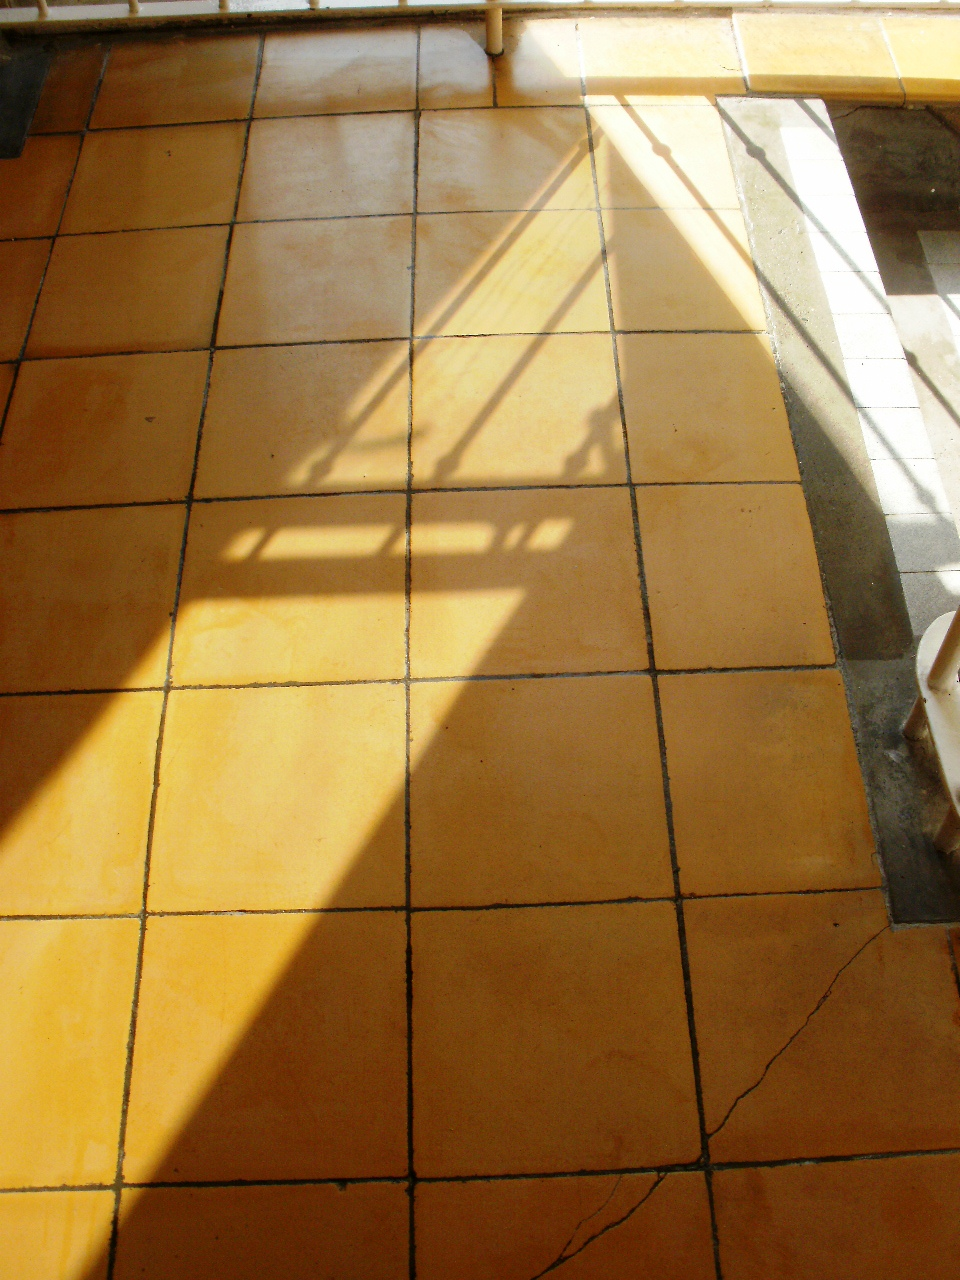 Cleaning old yellow ceramic floor tiles in poole dorset tile doctor yellow ceramic tiles after cleaning in poole dailygadgetfo Choice Image